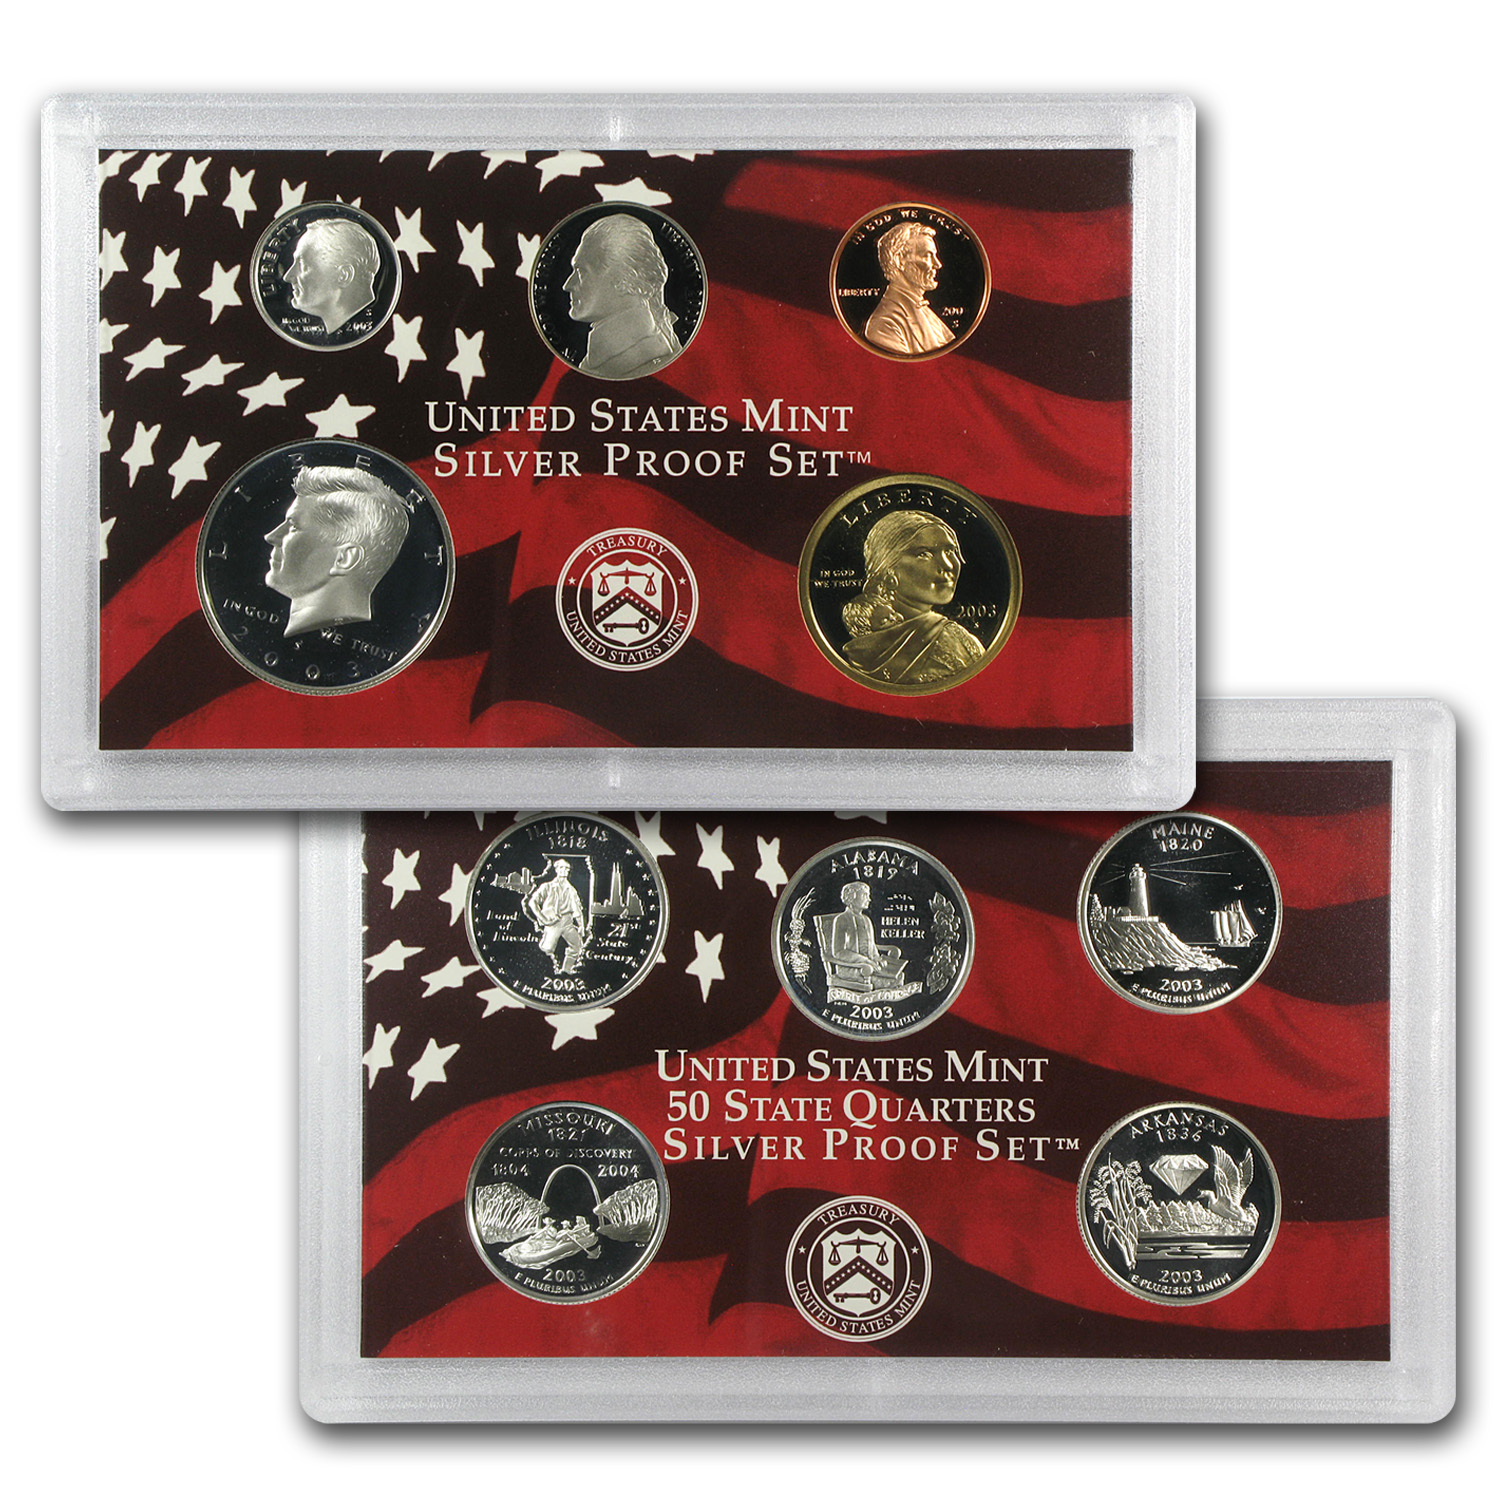 2003 U.S. (Silver) Proof Set